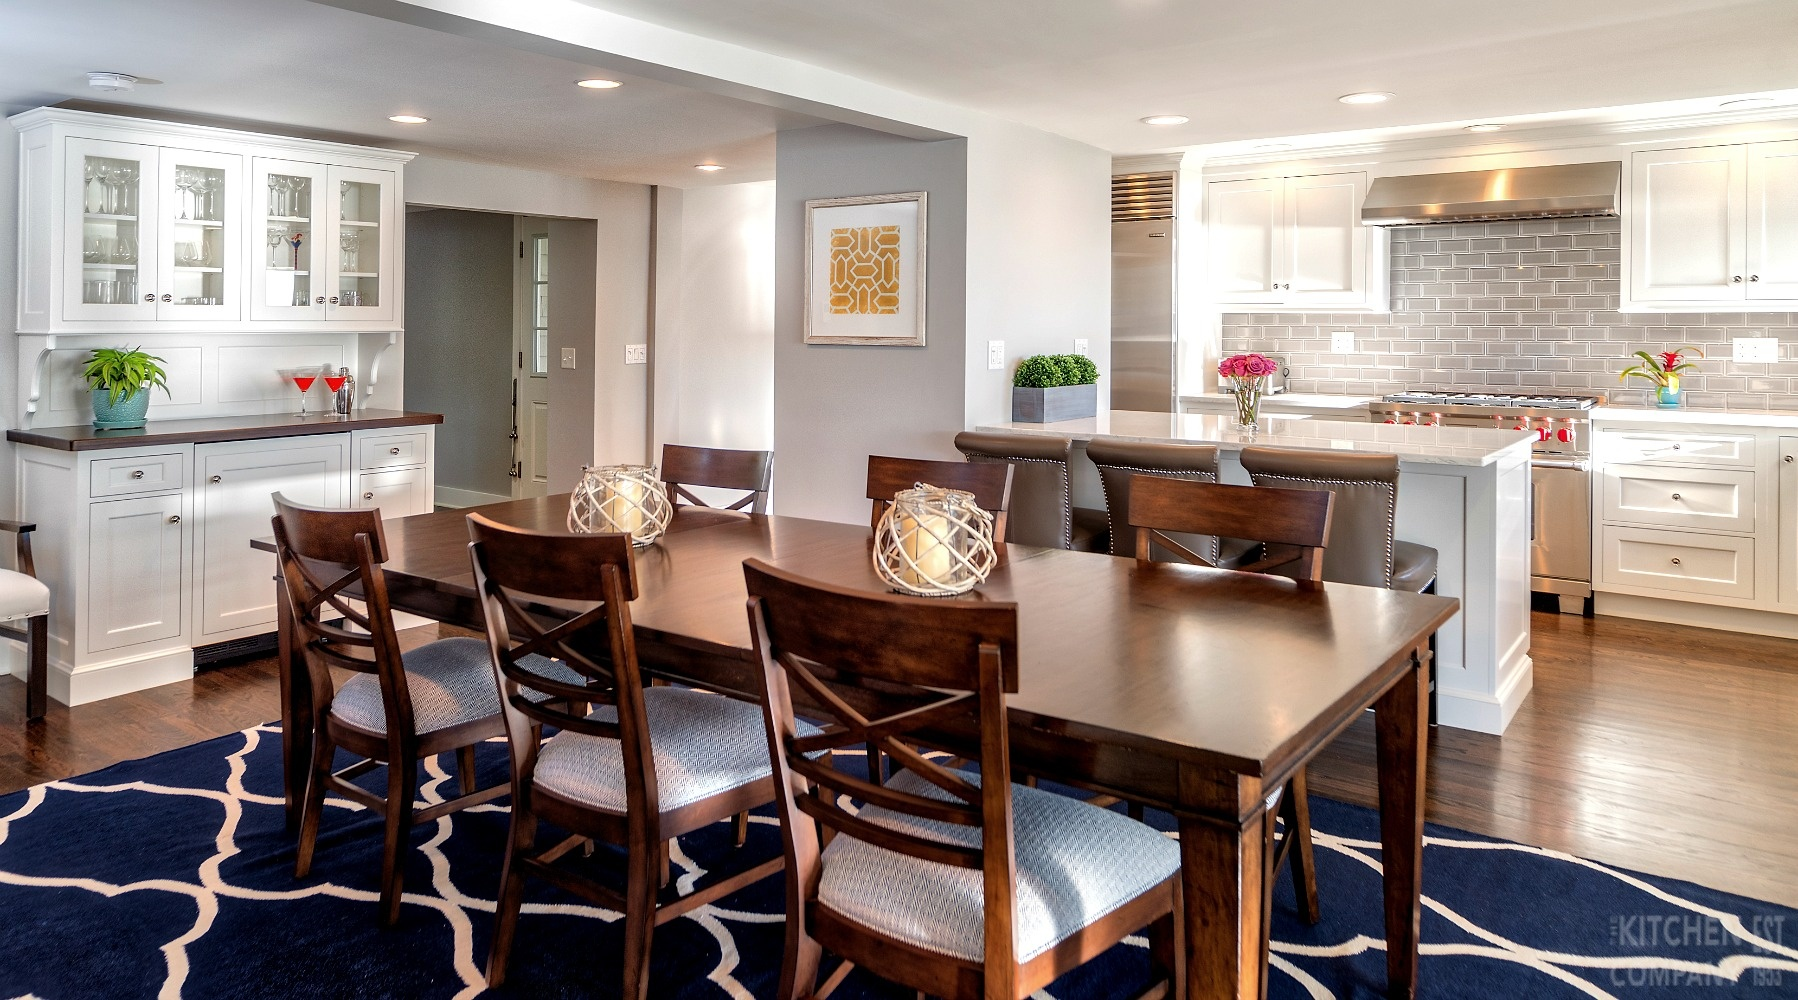 beach house kitchen in guilford ct transitional. Black Bedroom Furniture Sets. Home Design Ideas